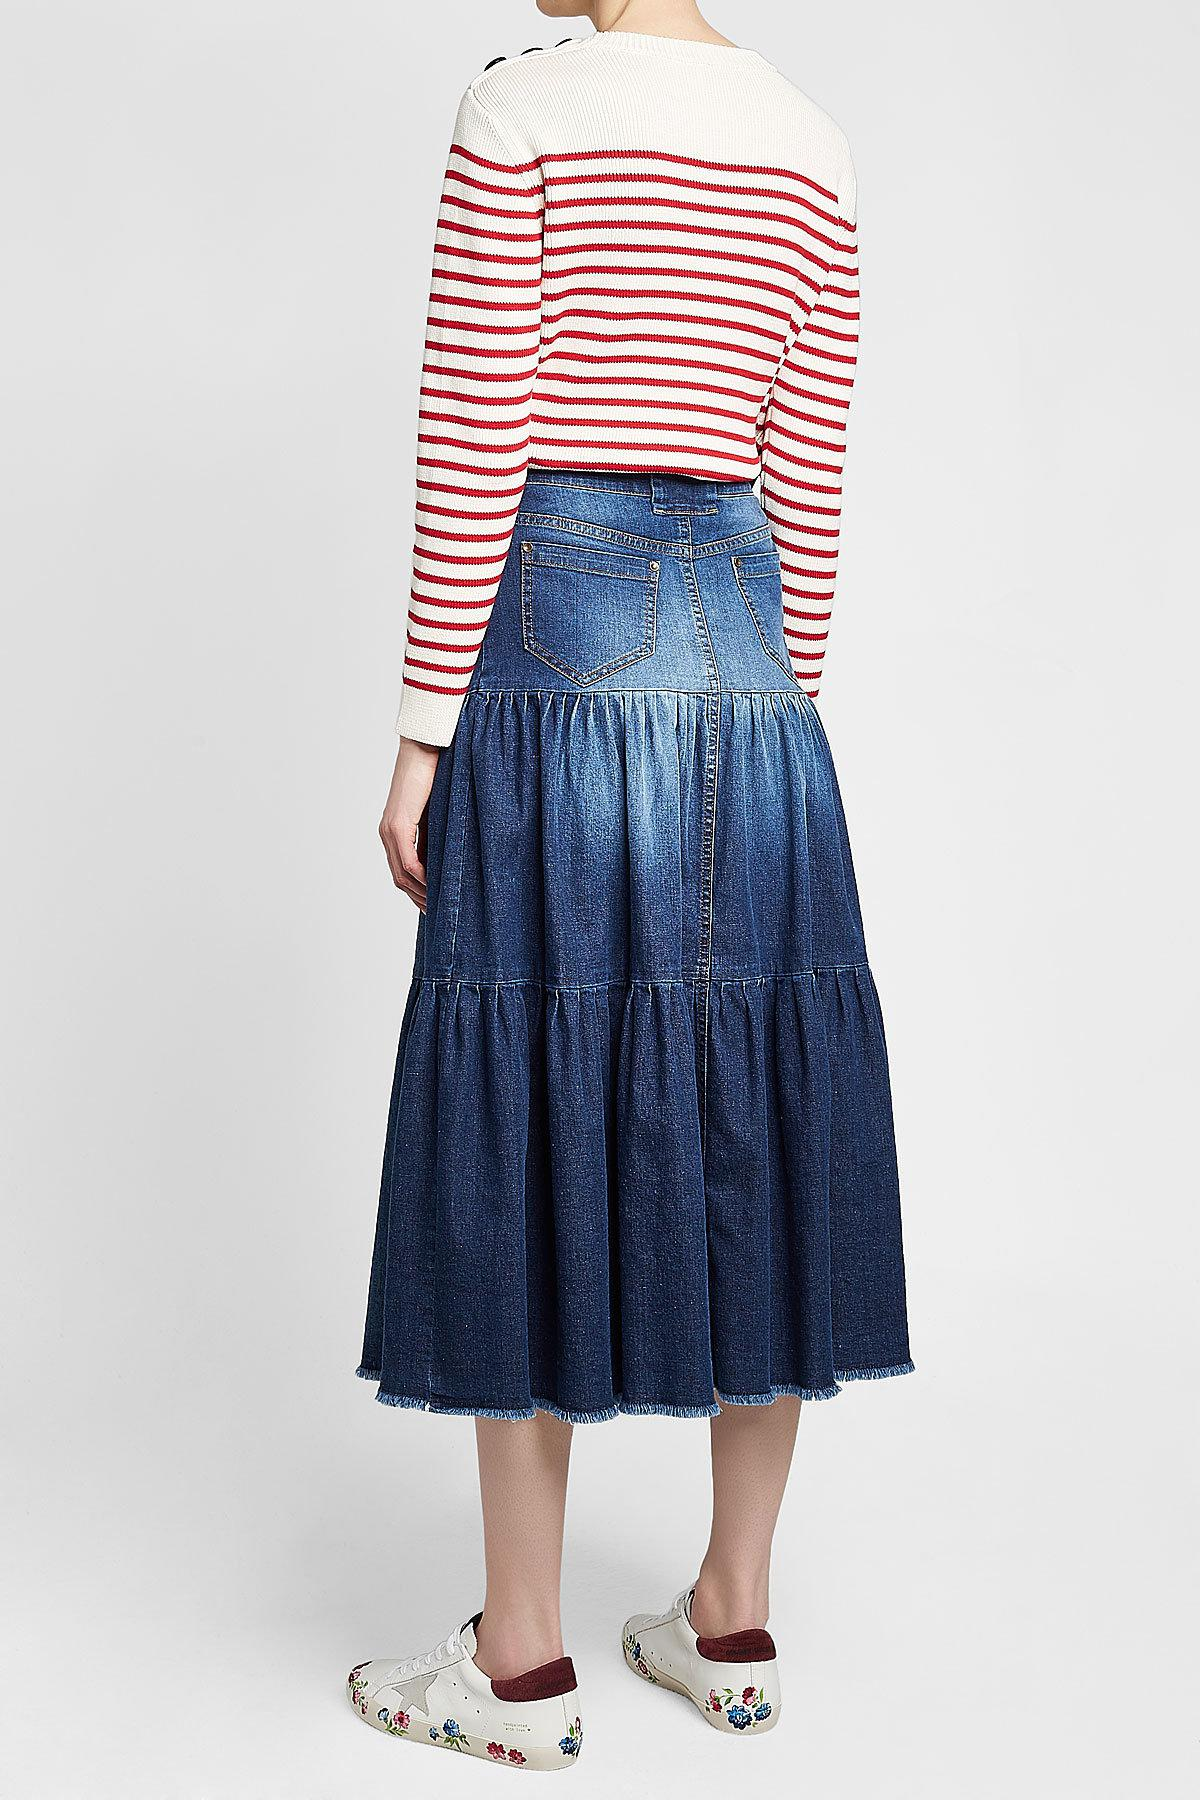 f93da84b47 RED Valentino Tiered Denim Midi Skirt in Blue - Lyst